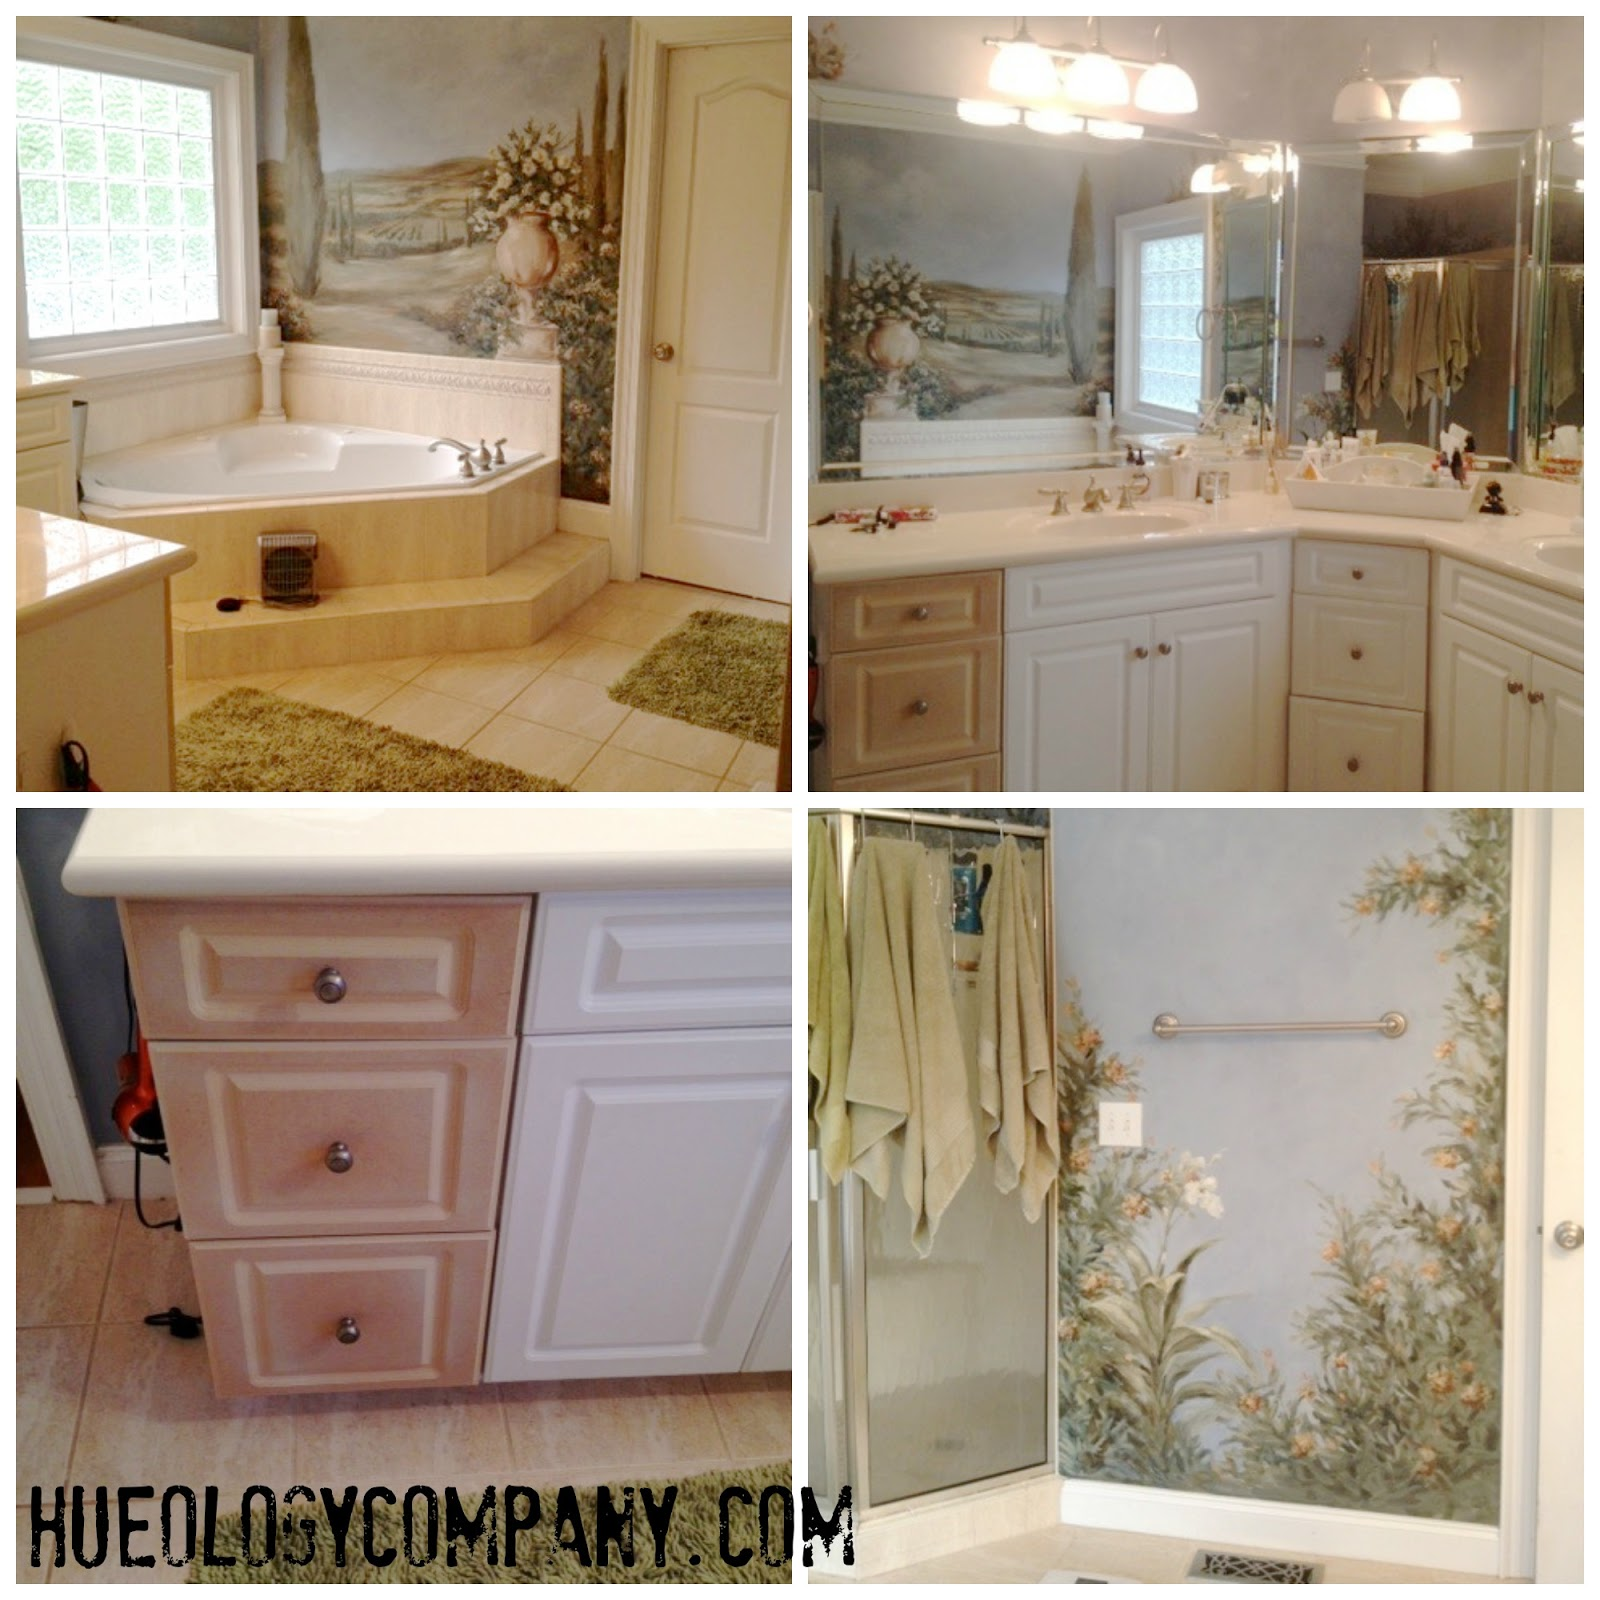 painting bathroom cabinets master bath makeover - Painted Bathroom Cabinets Before And After